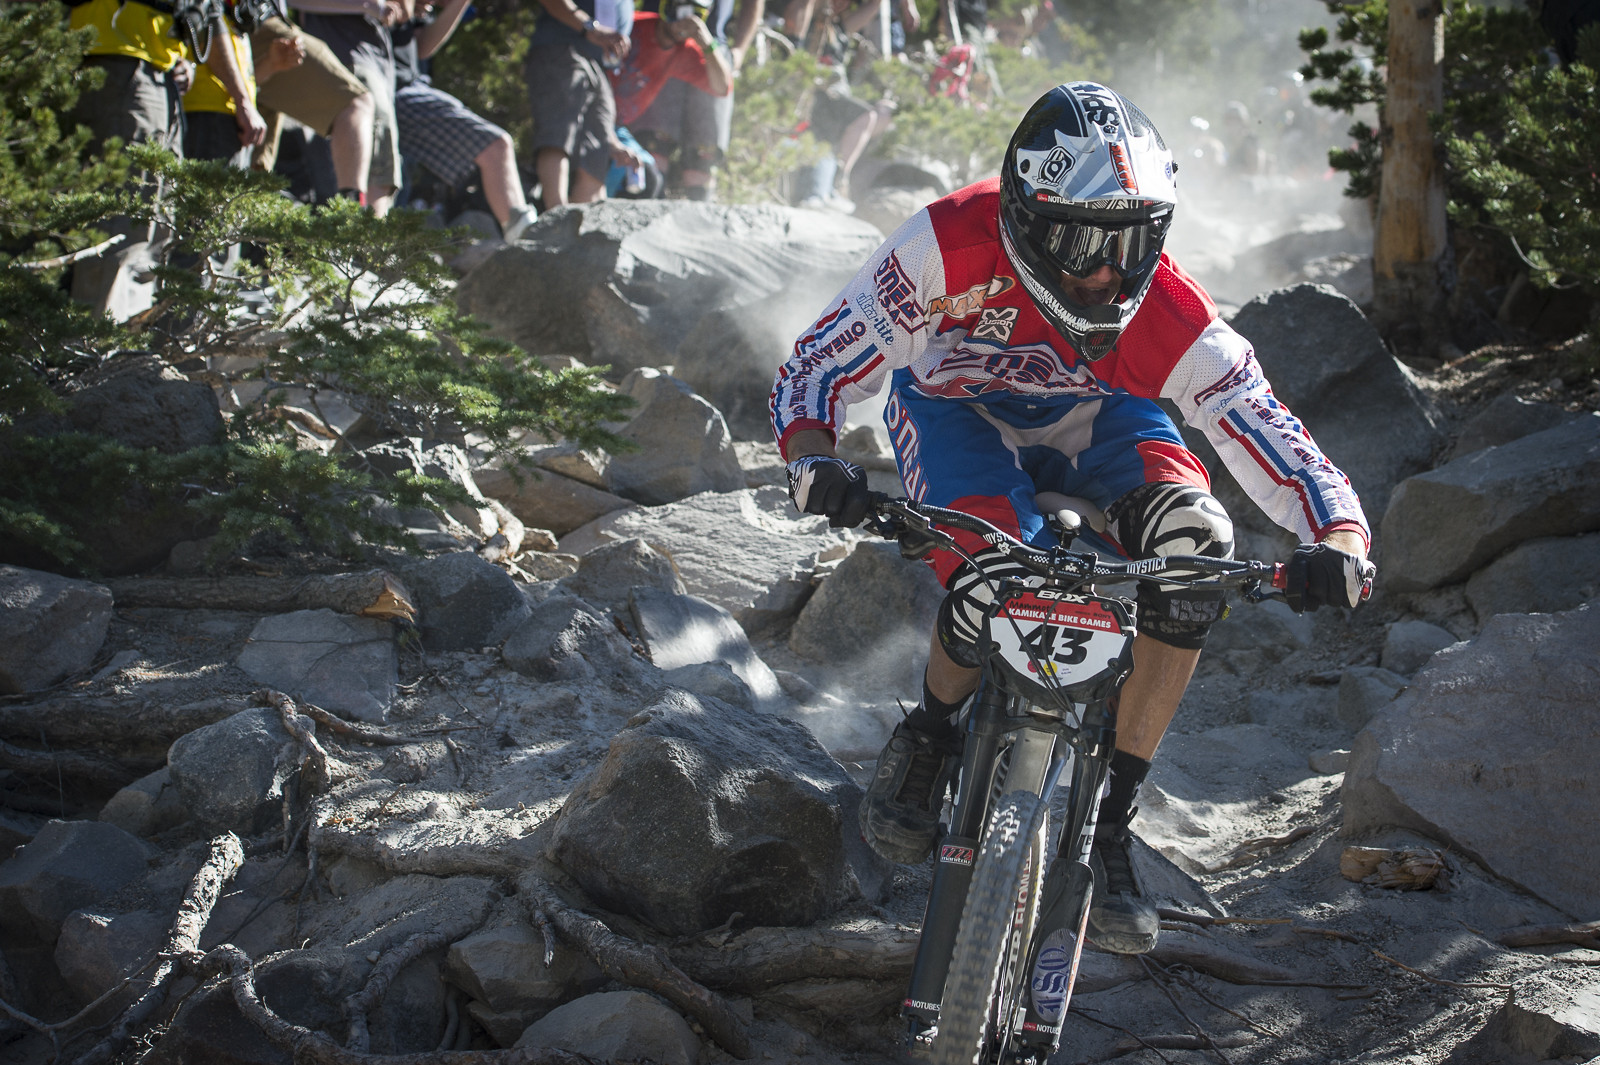 Race Gallery - ProGRT Finals, Mammoth - Kevin Aiello Victorious - Ian Collins - Mountain Biking Pictures - Vital MTB